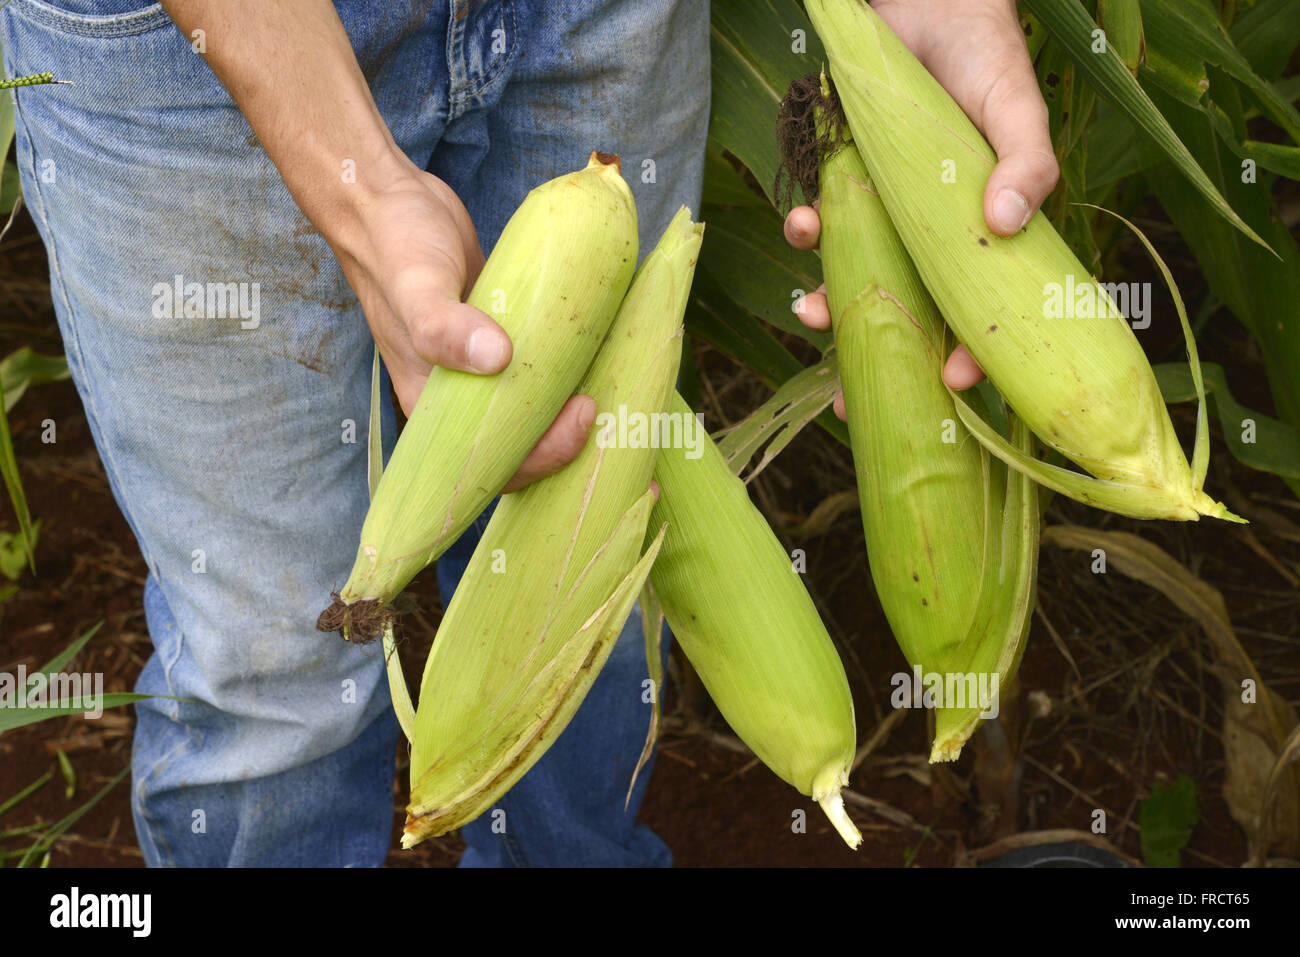 Farmer holding ears of corn in the countryside - Stock Image